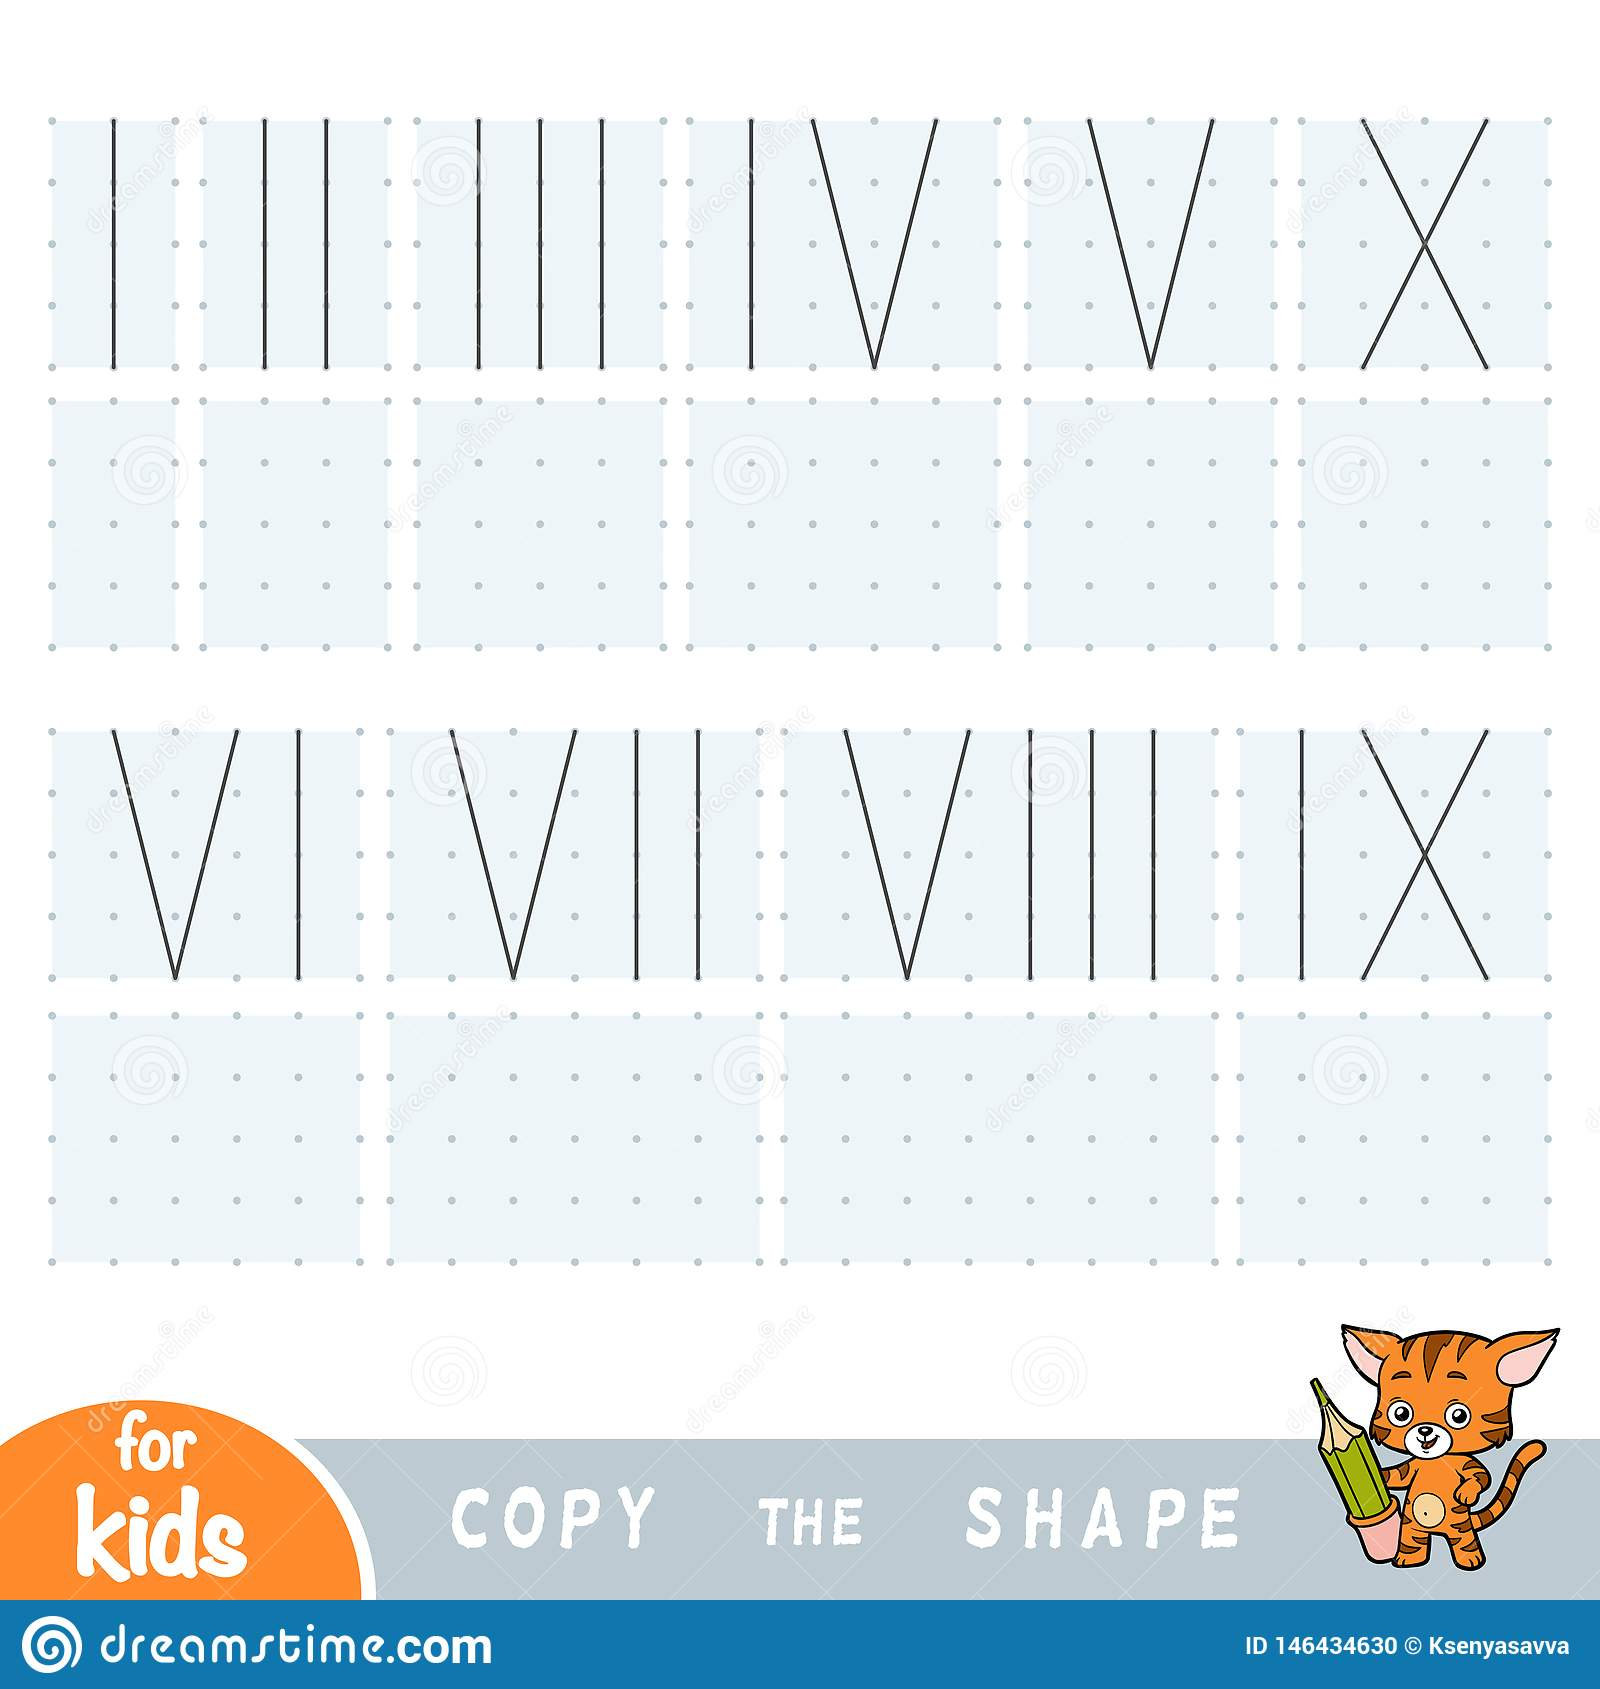 Copy The Picture Education Game For Children Draw Roman